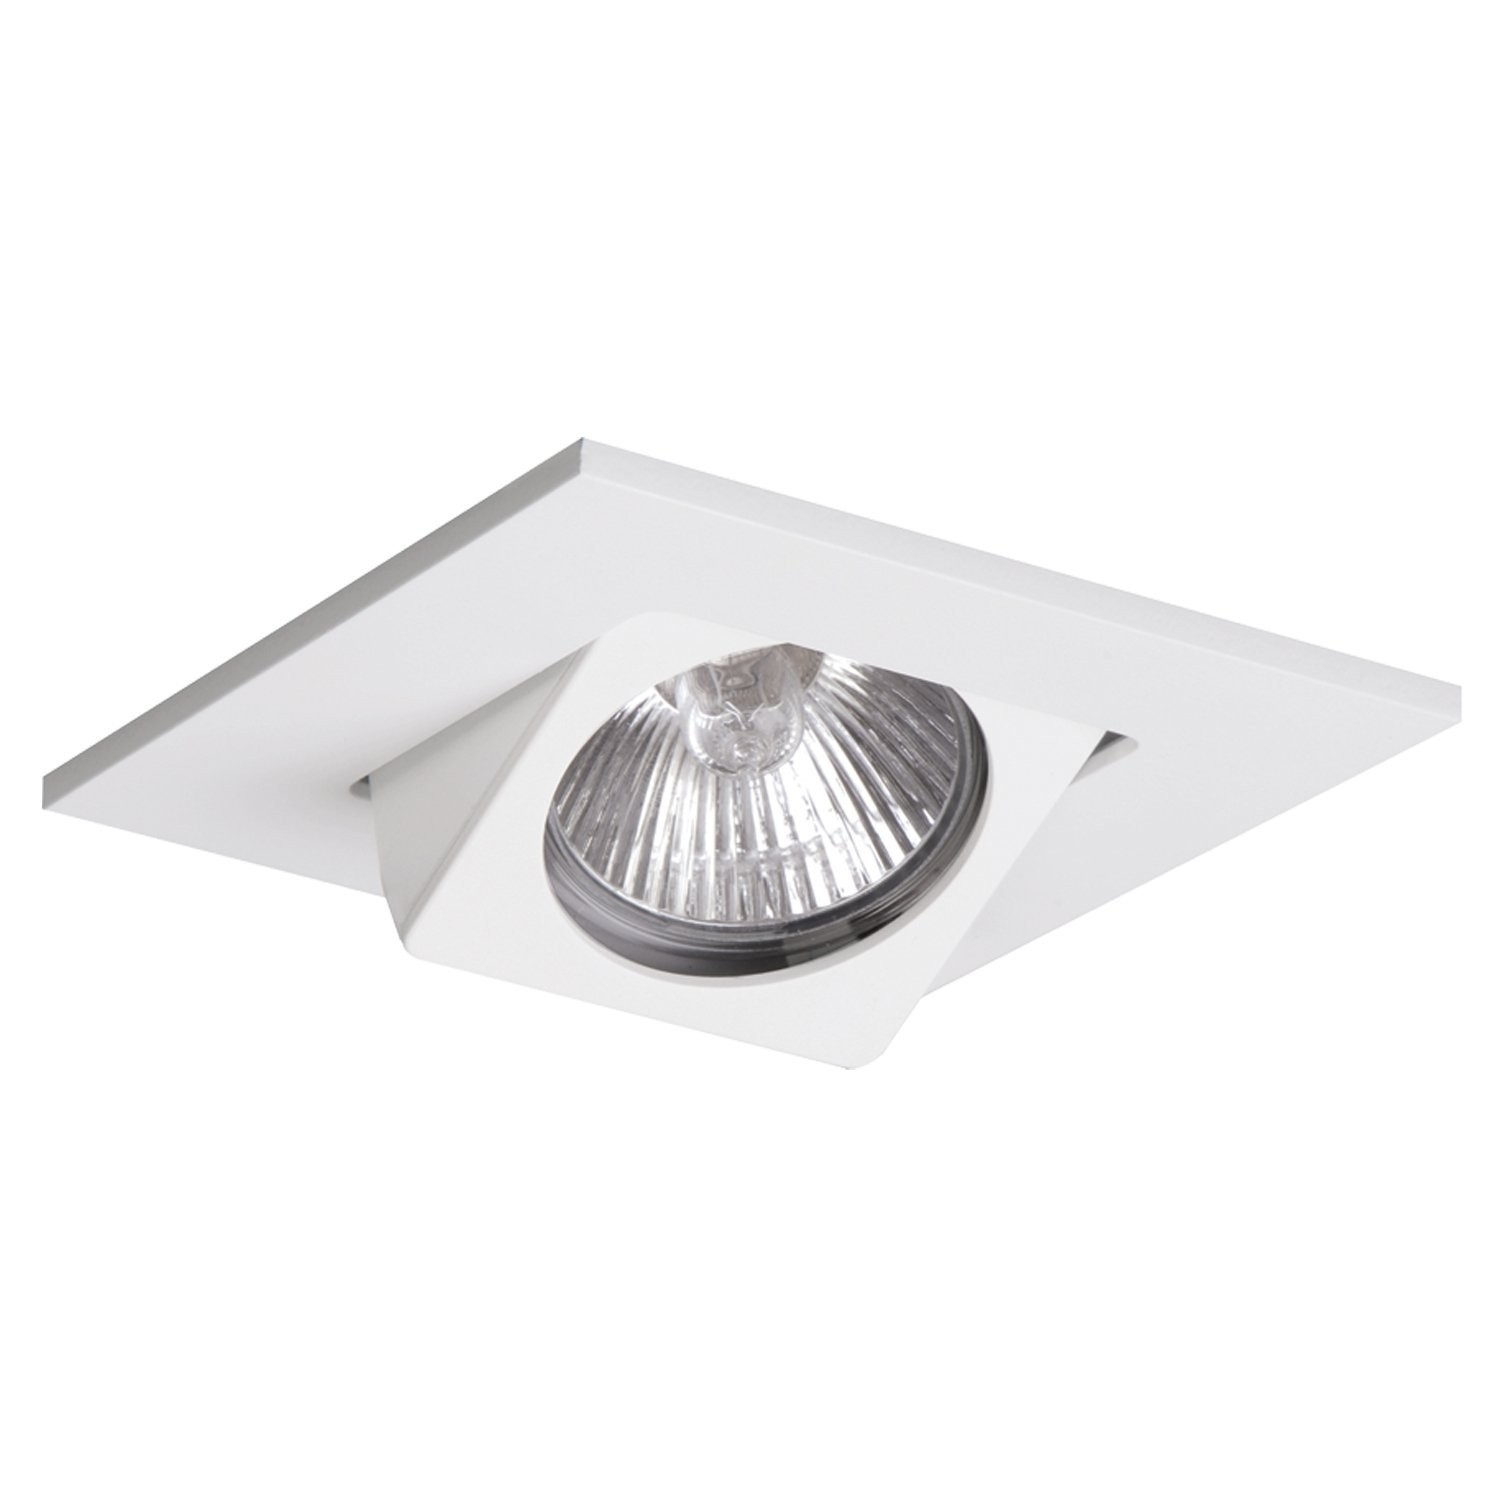 Halo recessed lighting trims westside wholesale halo 3013wh mozeypictures Images